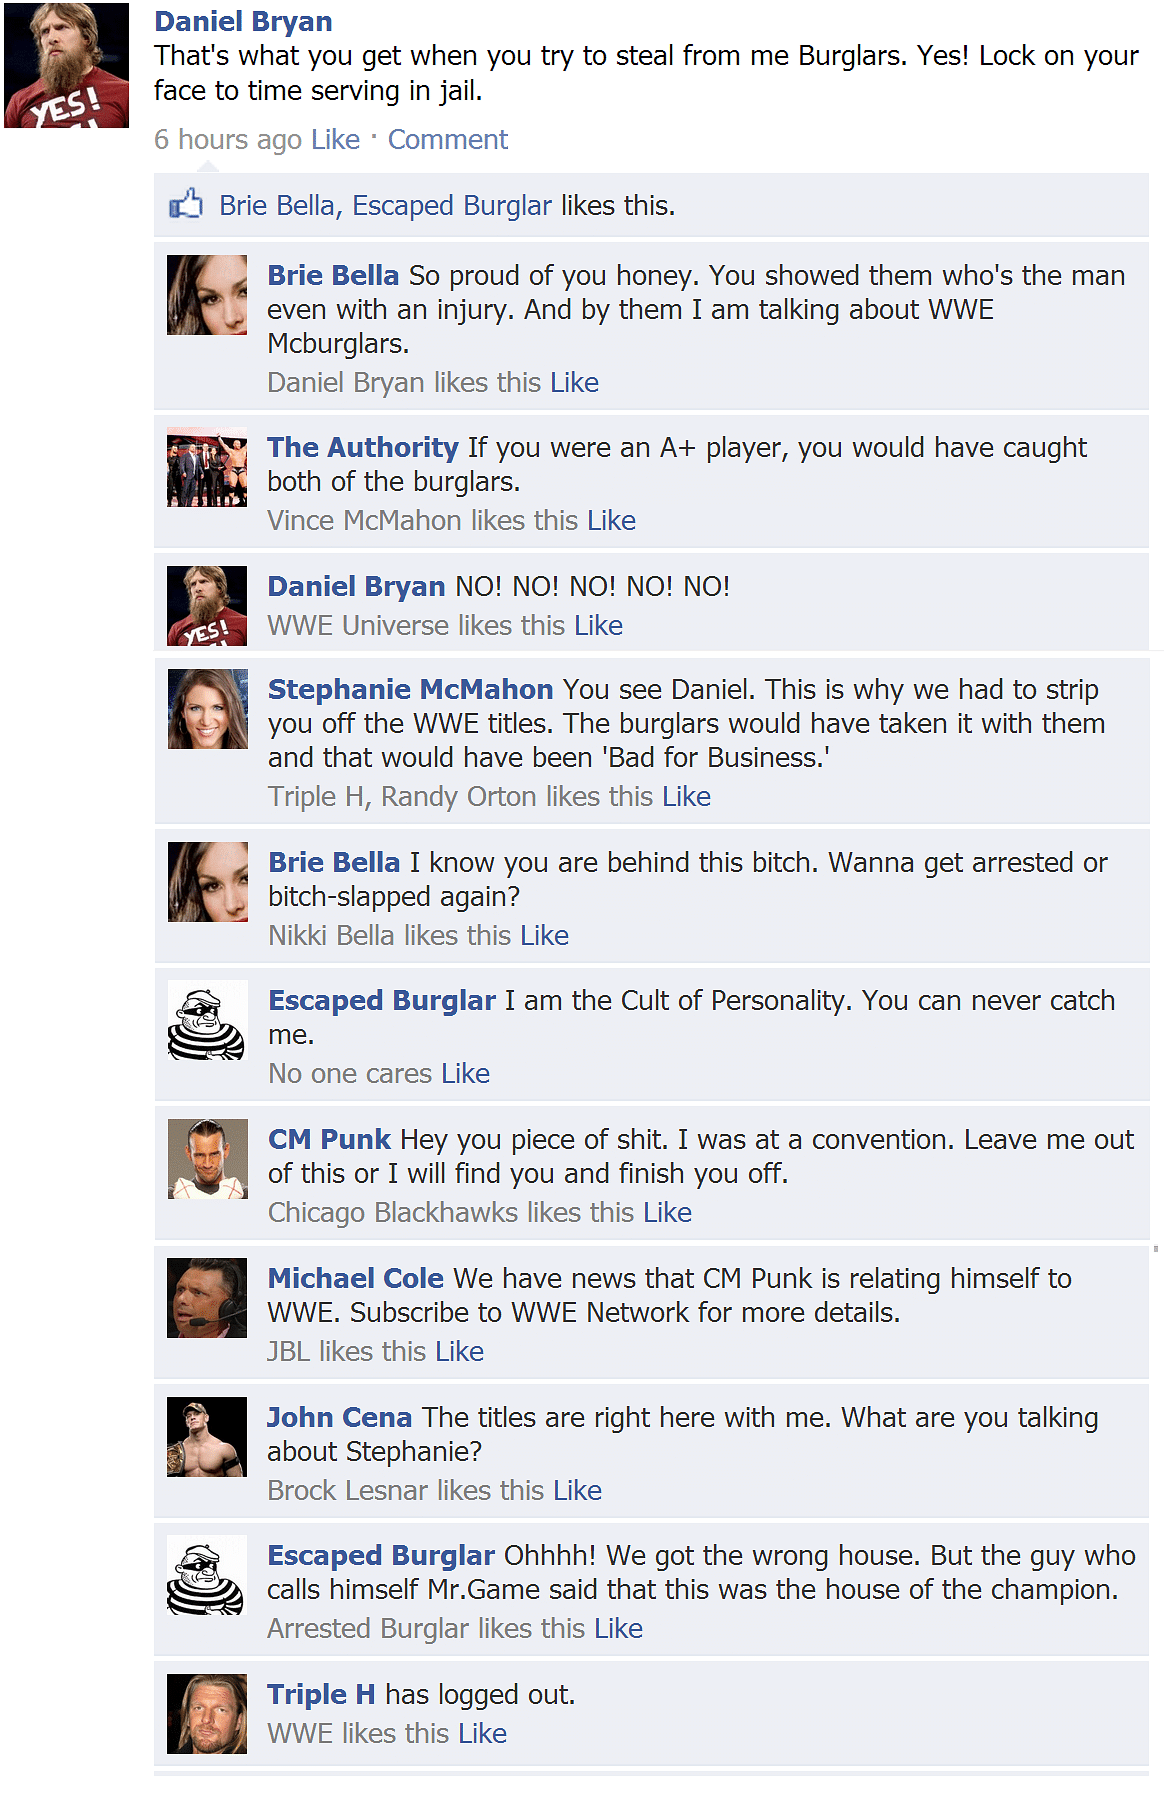 Fake FB Wall: Daniel Bryan reacts after two burglars break into his home